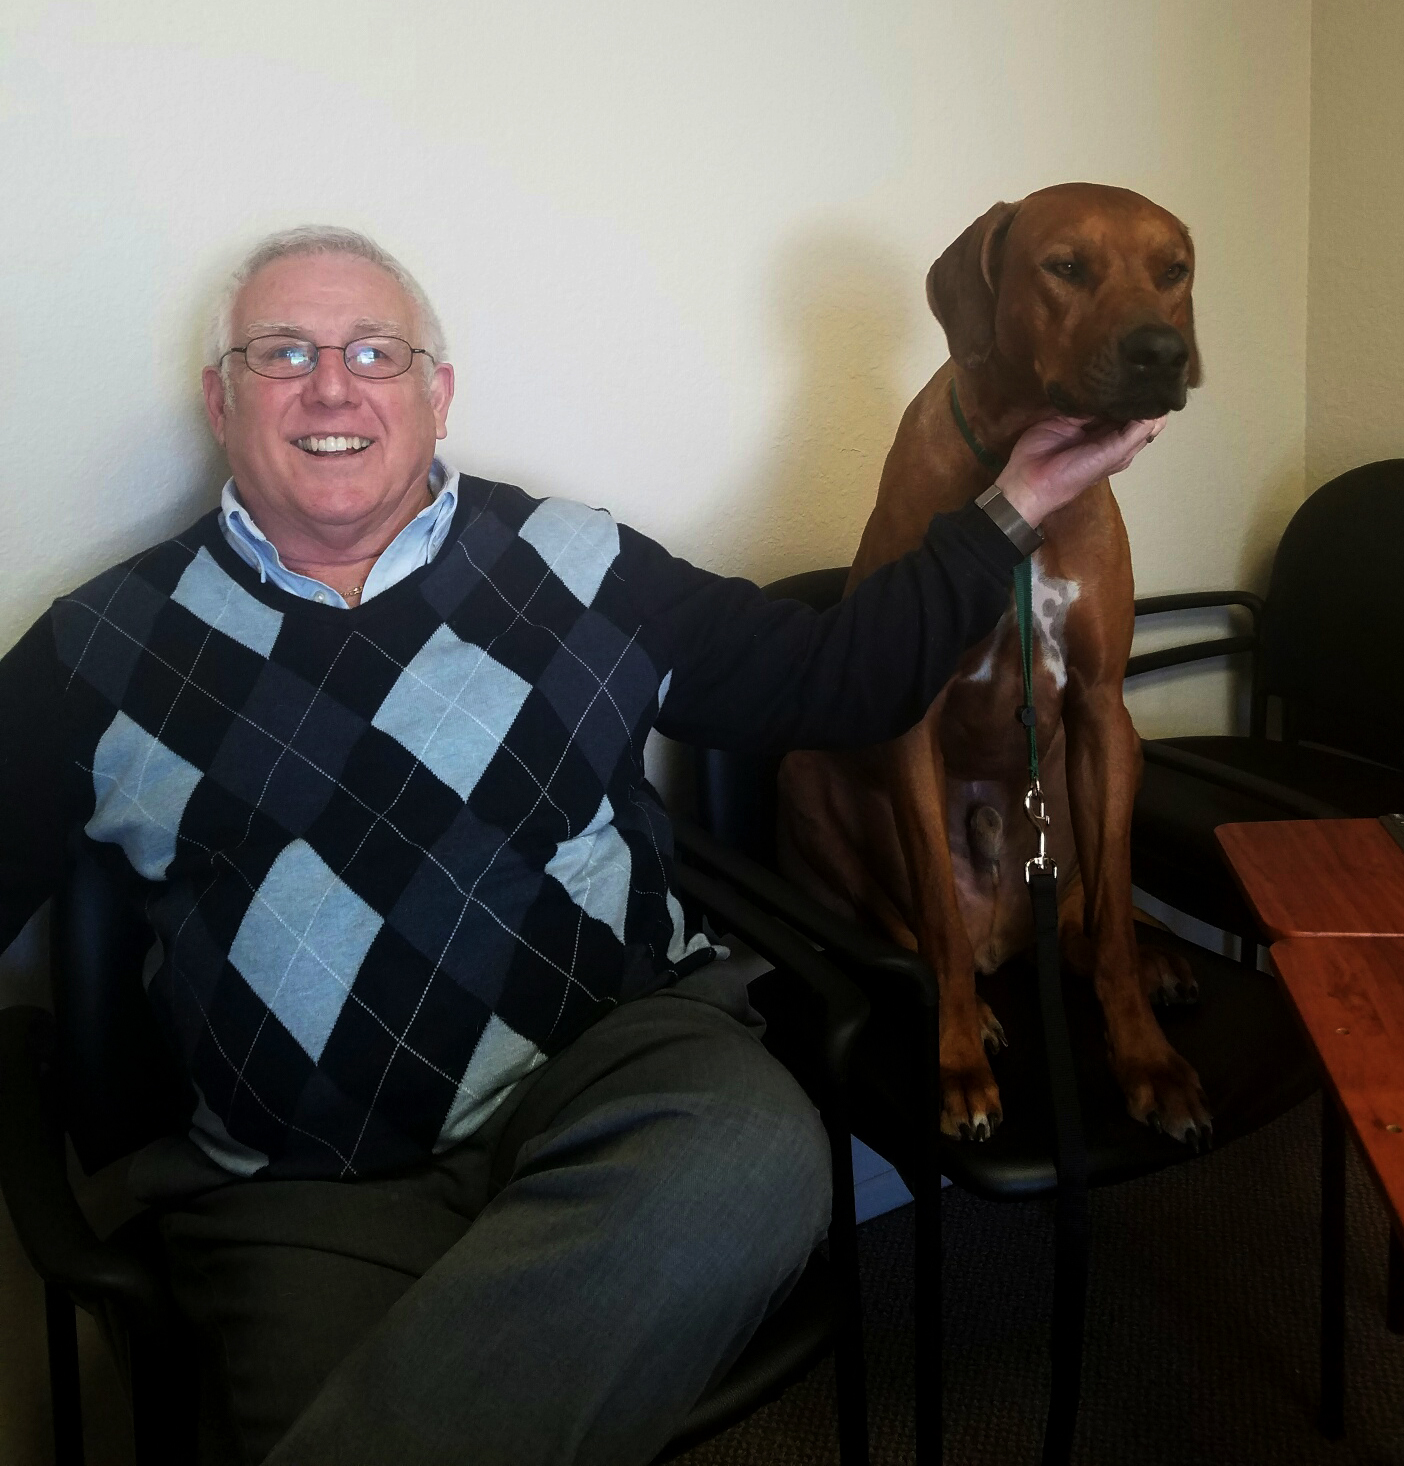 Dr. Ken Tudor with one of his patients